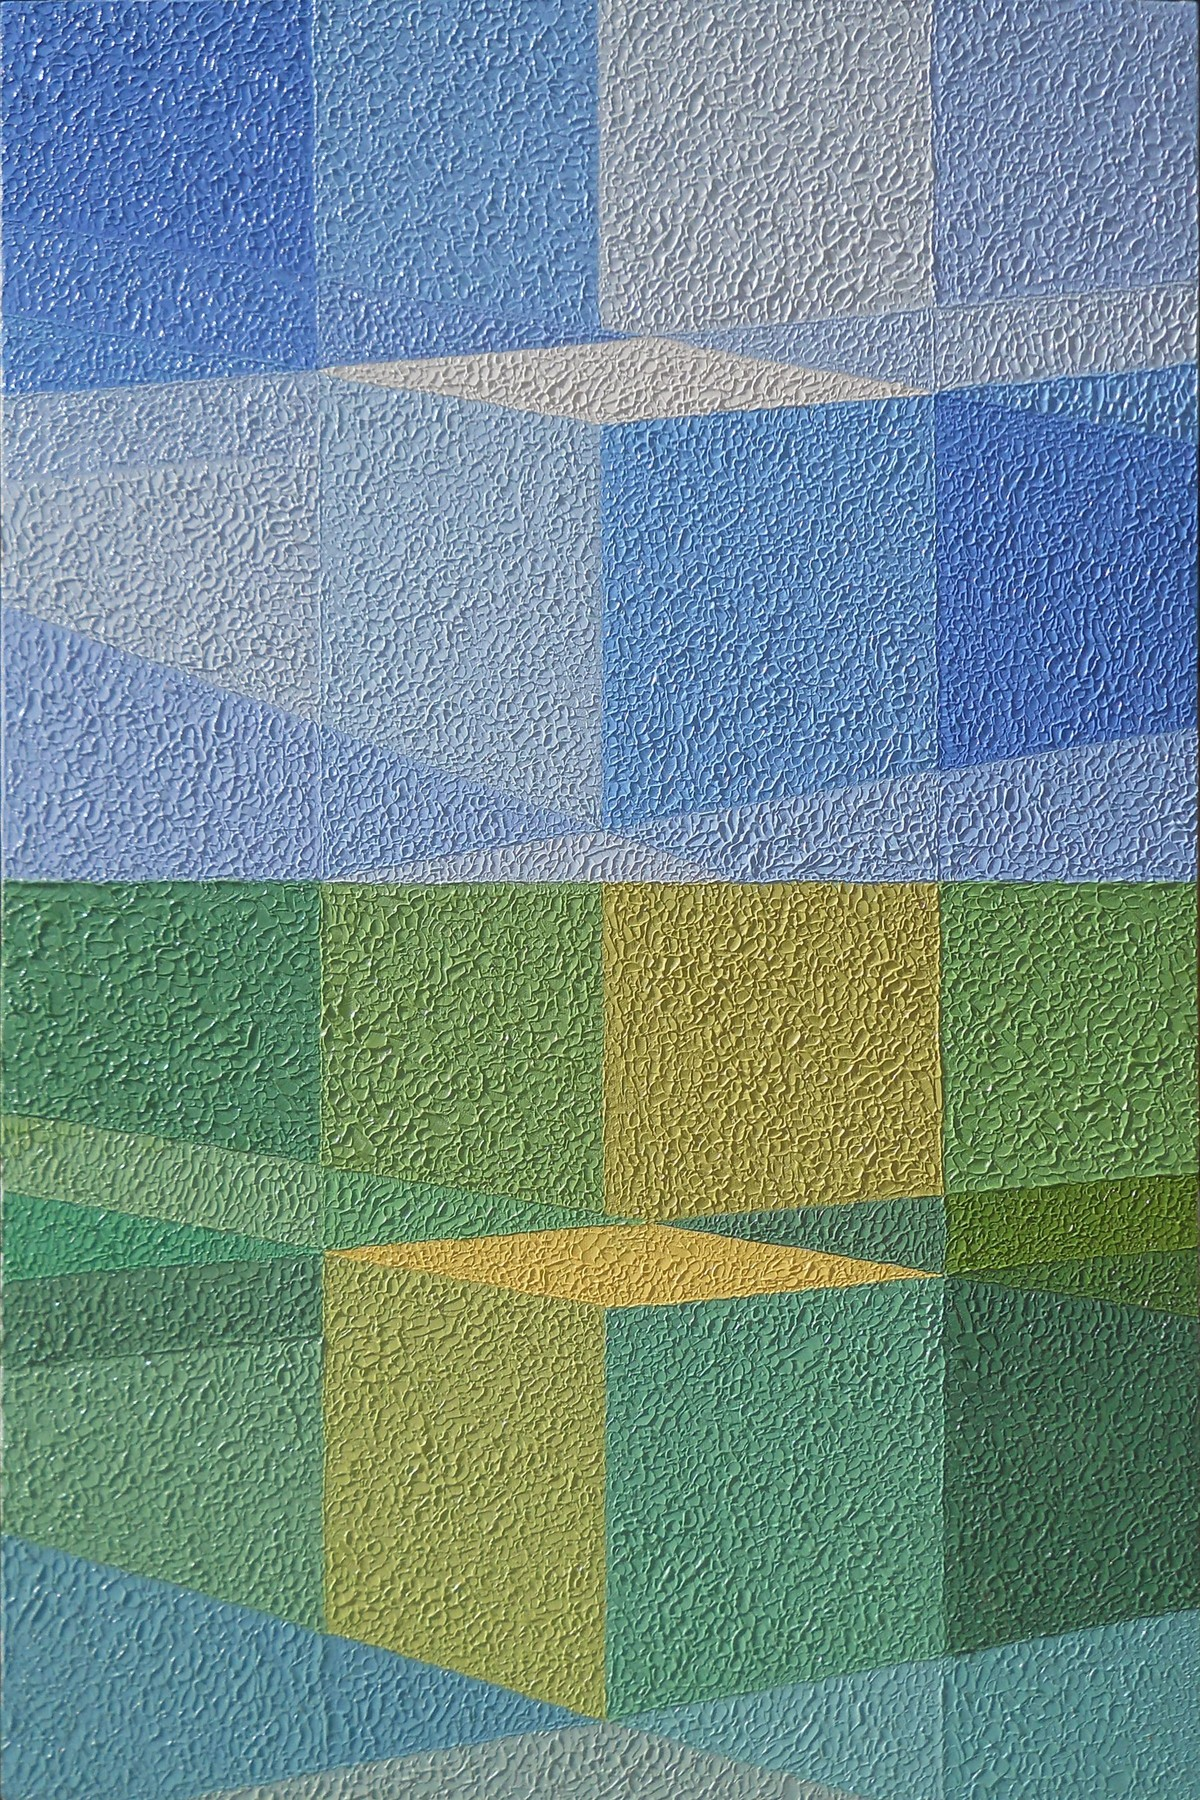 CUBIC SCAPE by S.P.Verma, Abstract Painting, Oil on Canvas Board, Green color